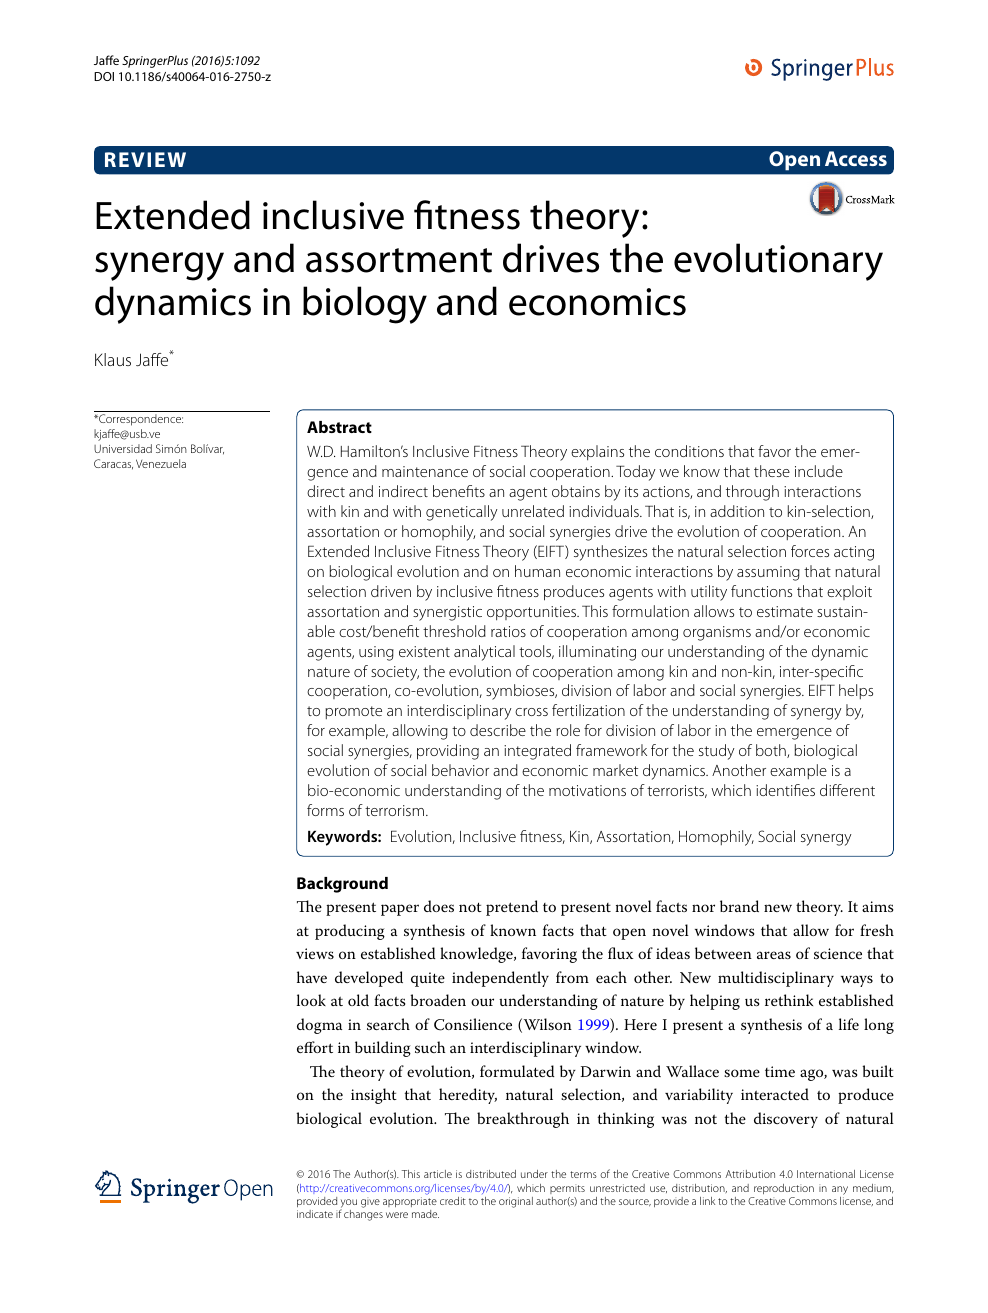 Extended inclusive fitness theory: synergy and assortment